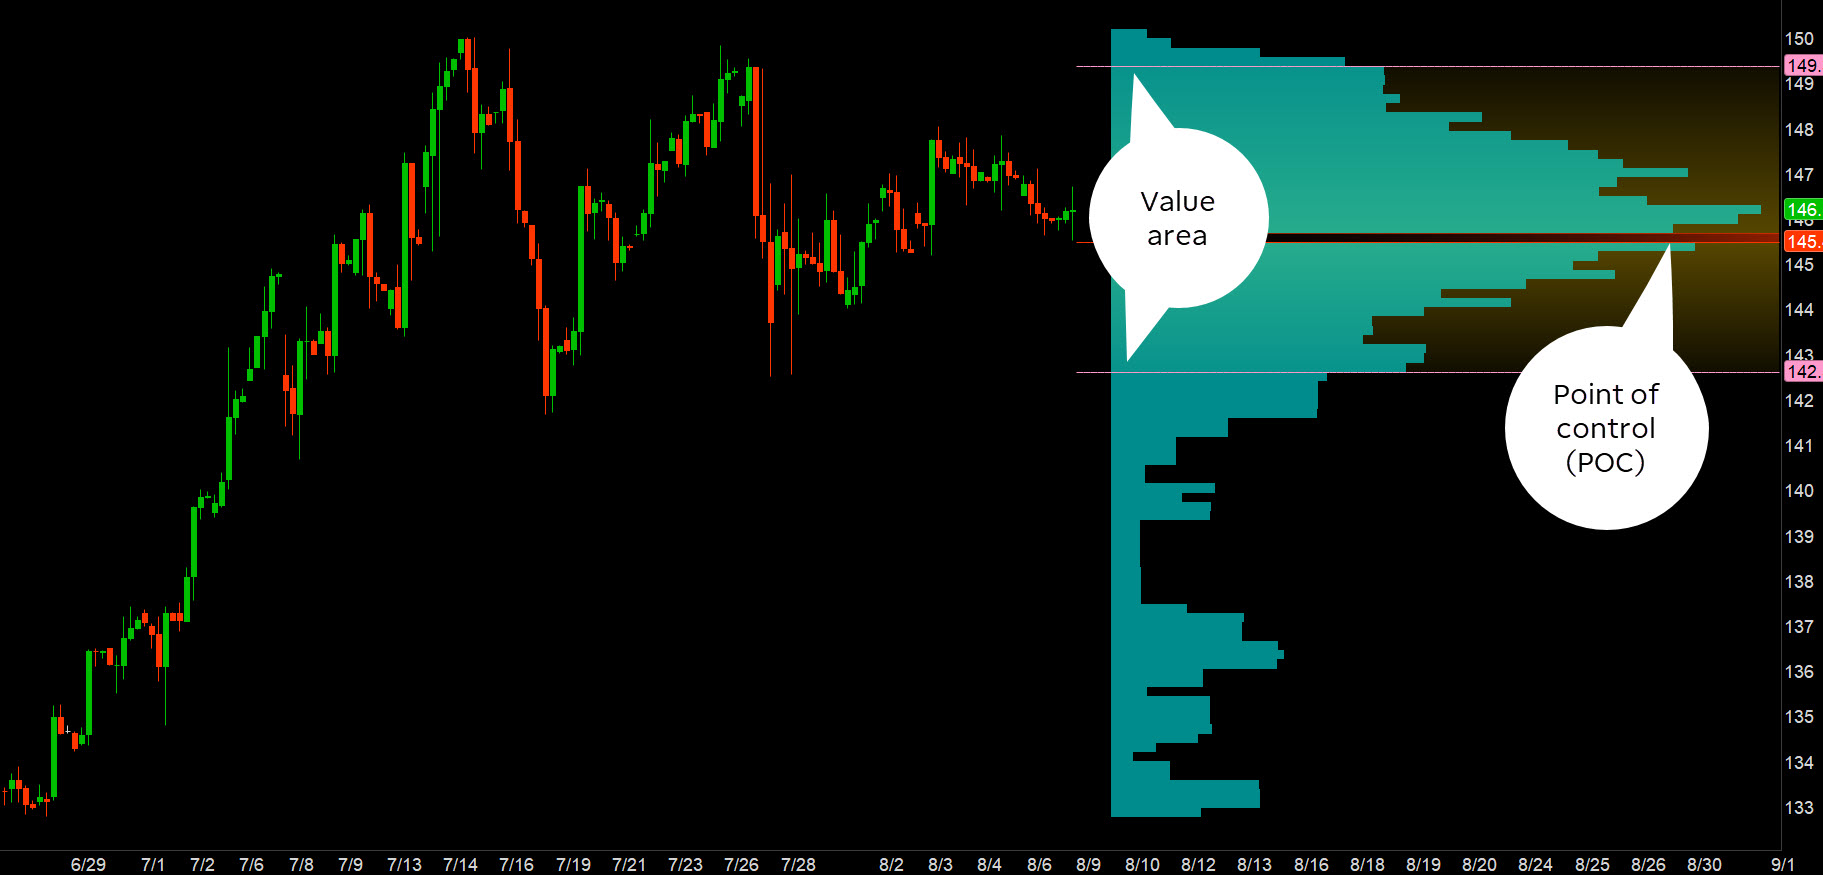 volume profile indicator showing point of control and value area